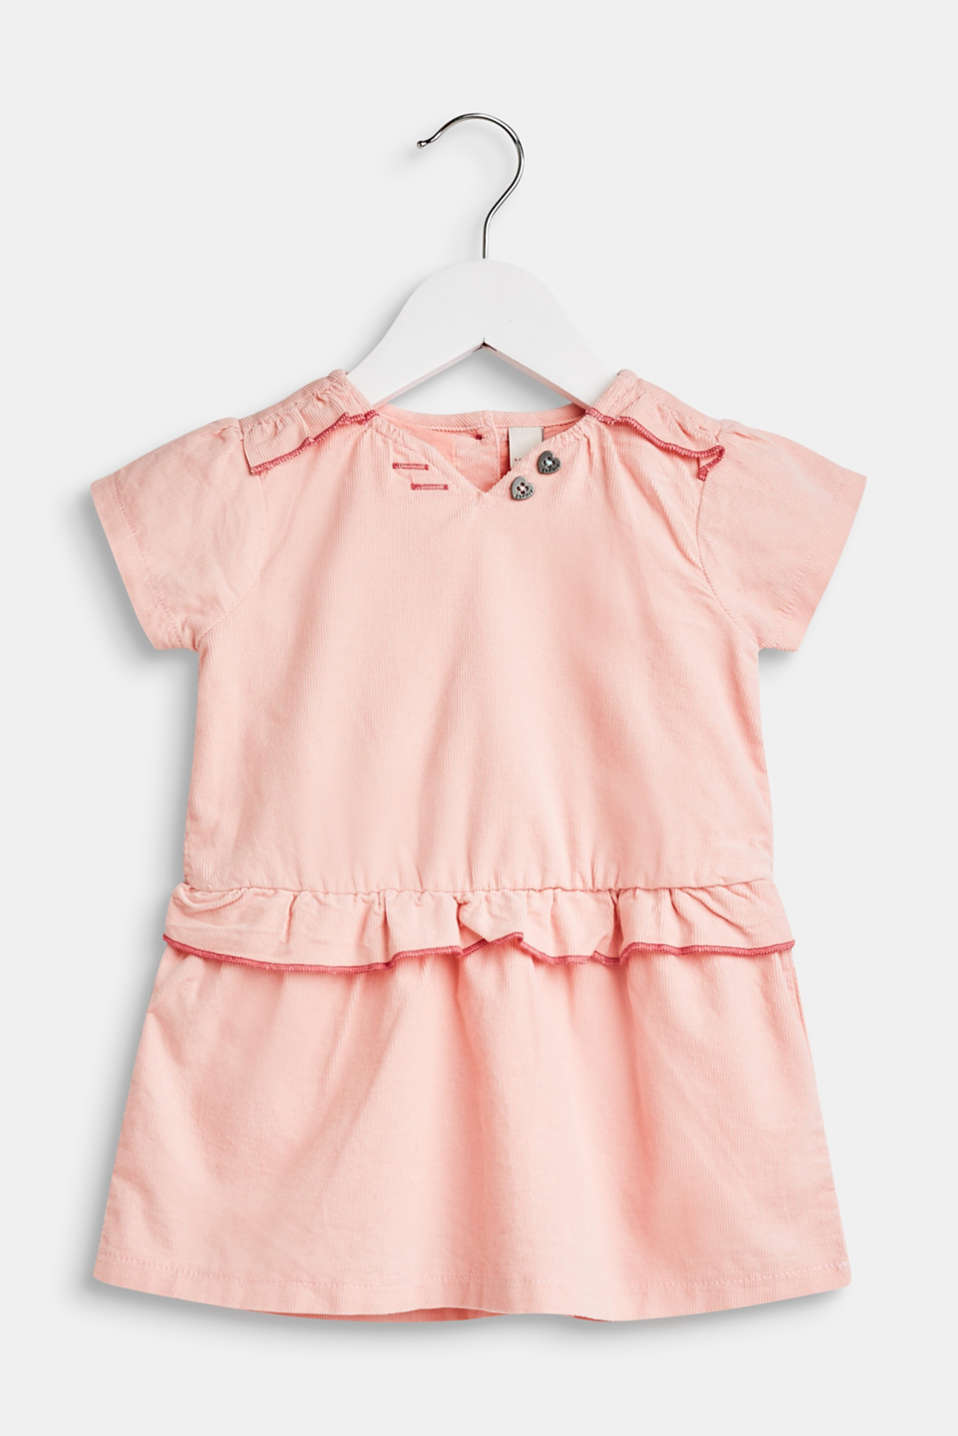 Esprit - Dress in needlecord, 100% cotton